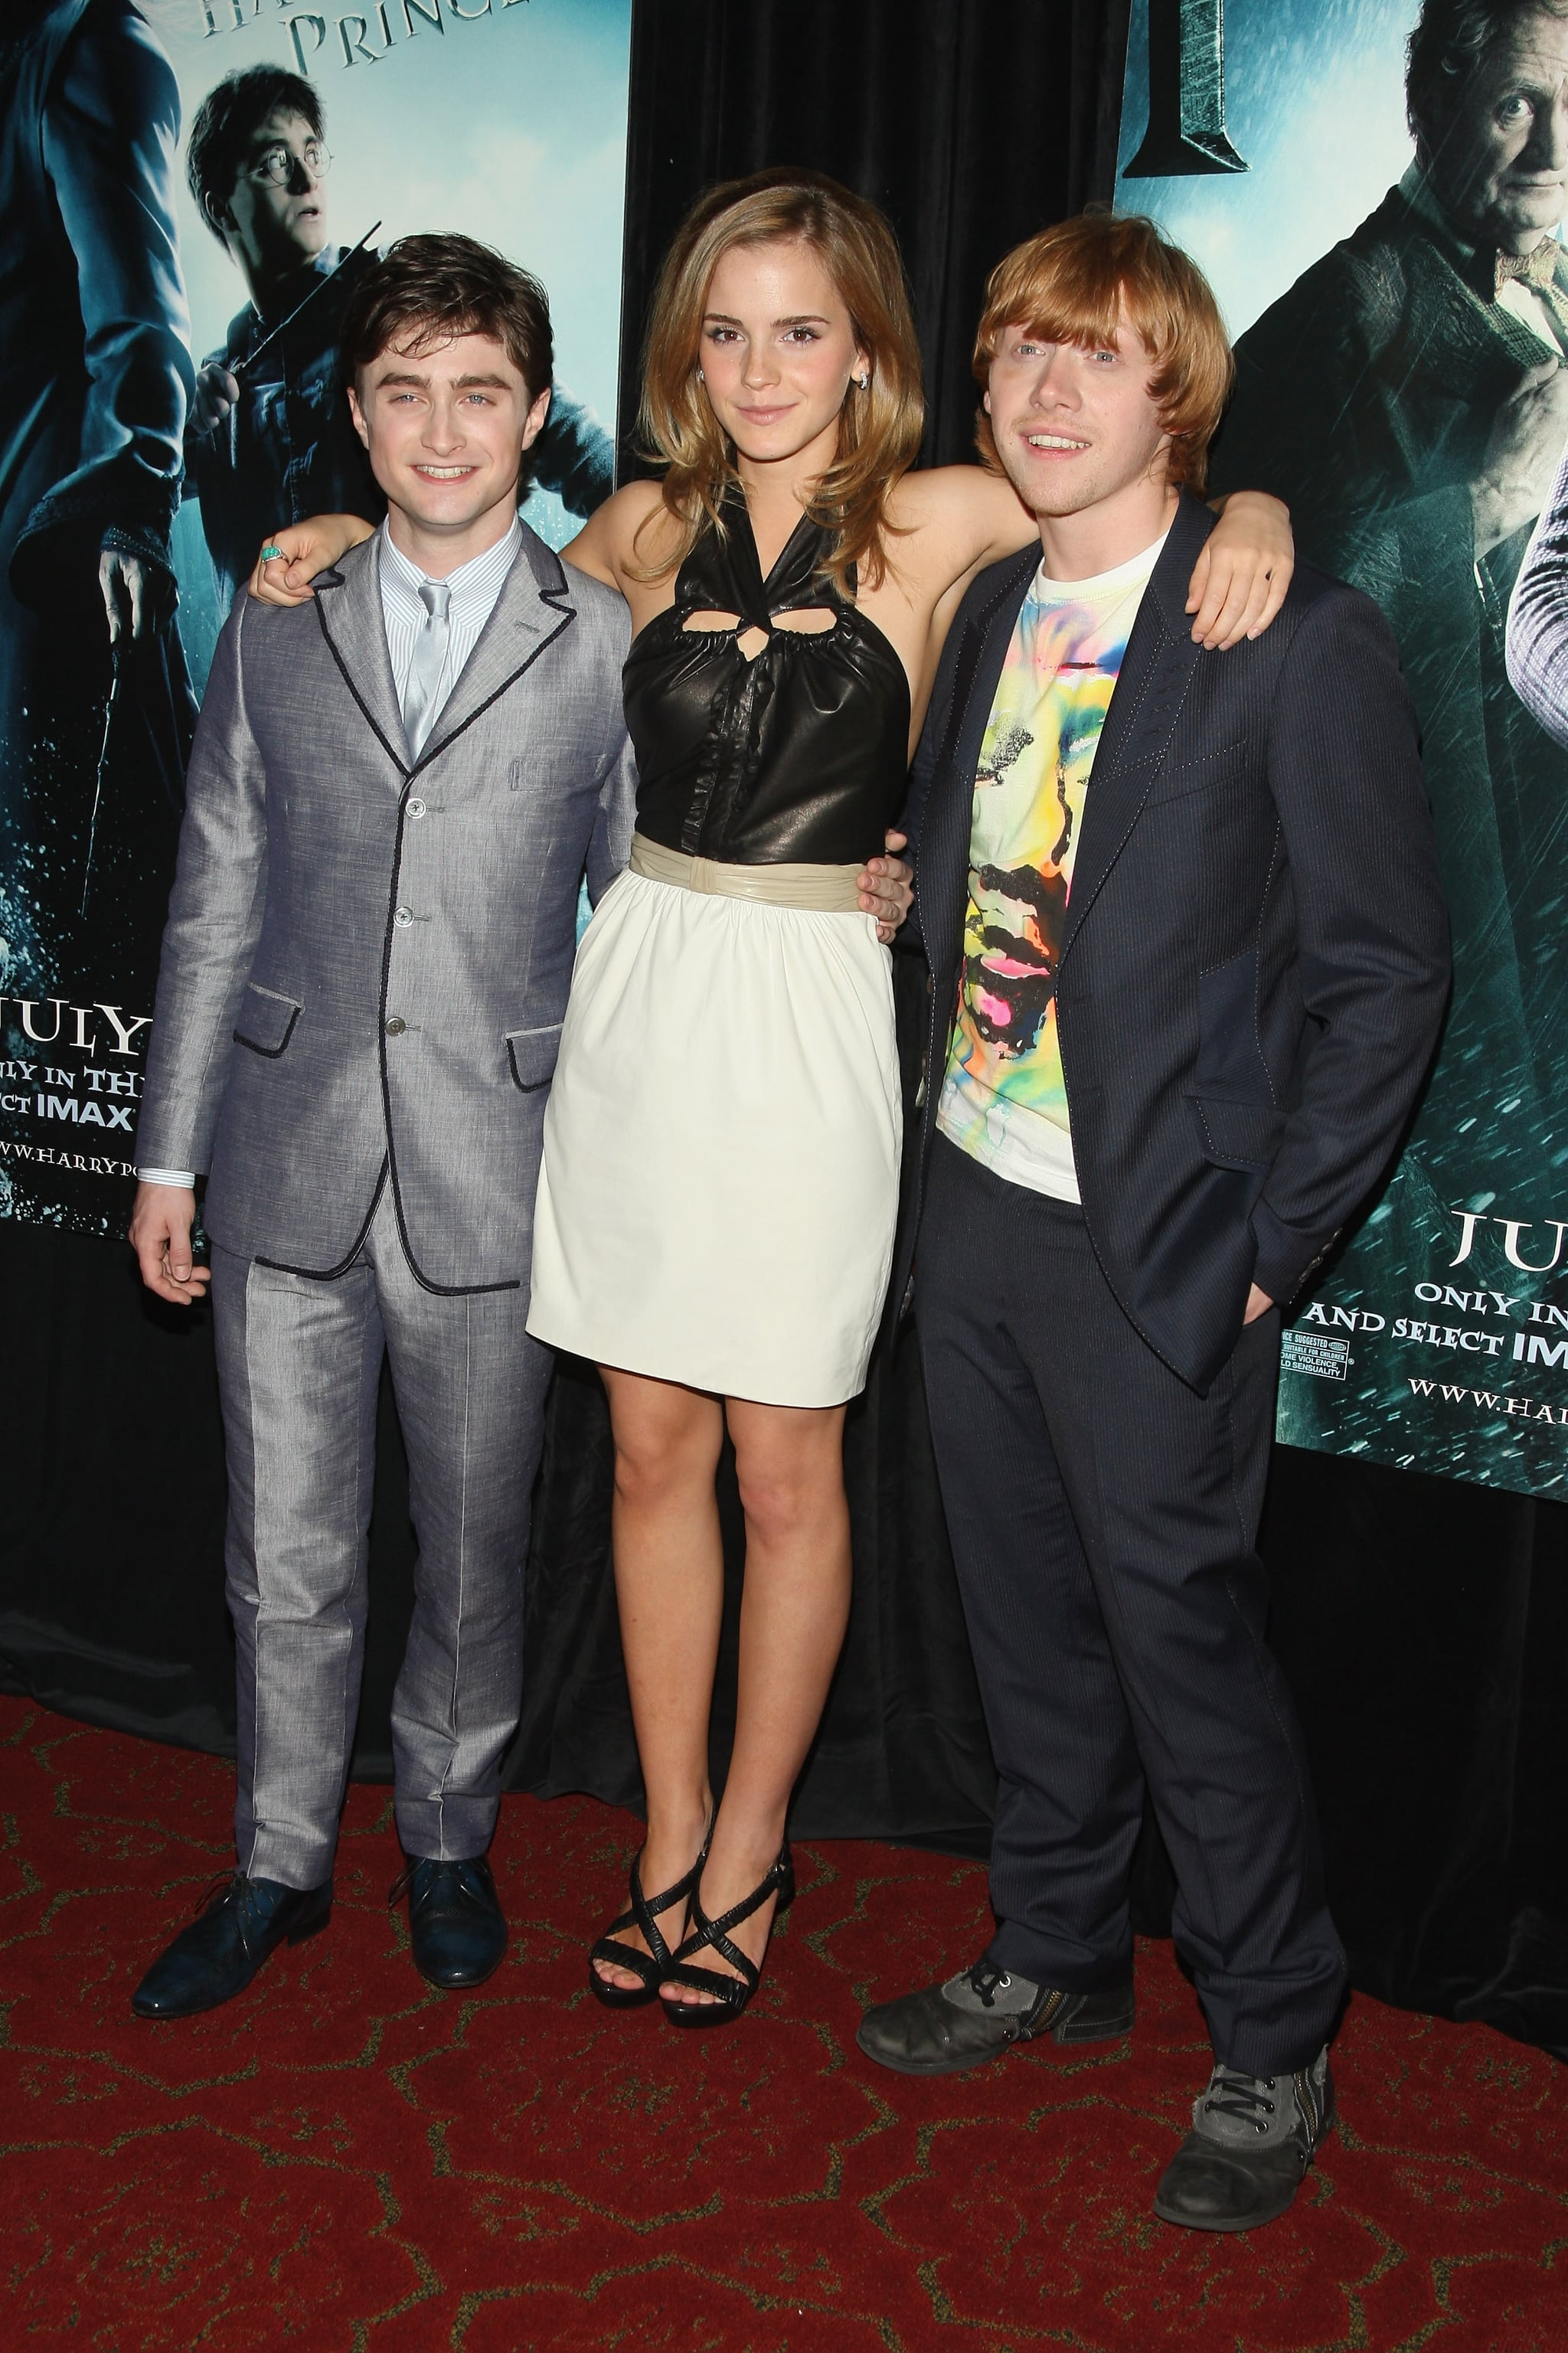 Photos From New York Premiere Of Harry Potter And The Half